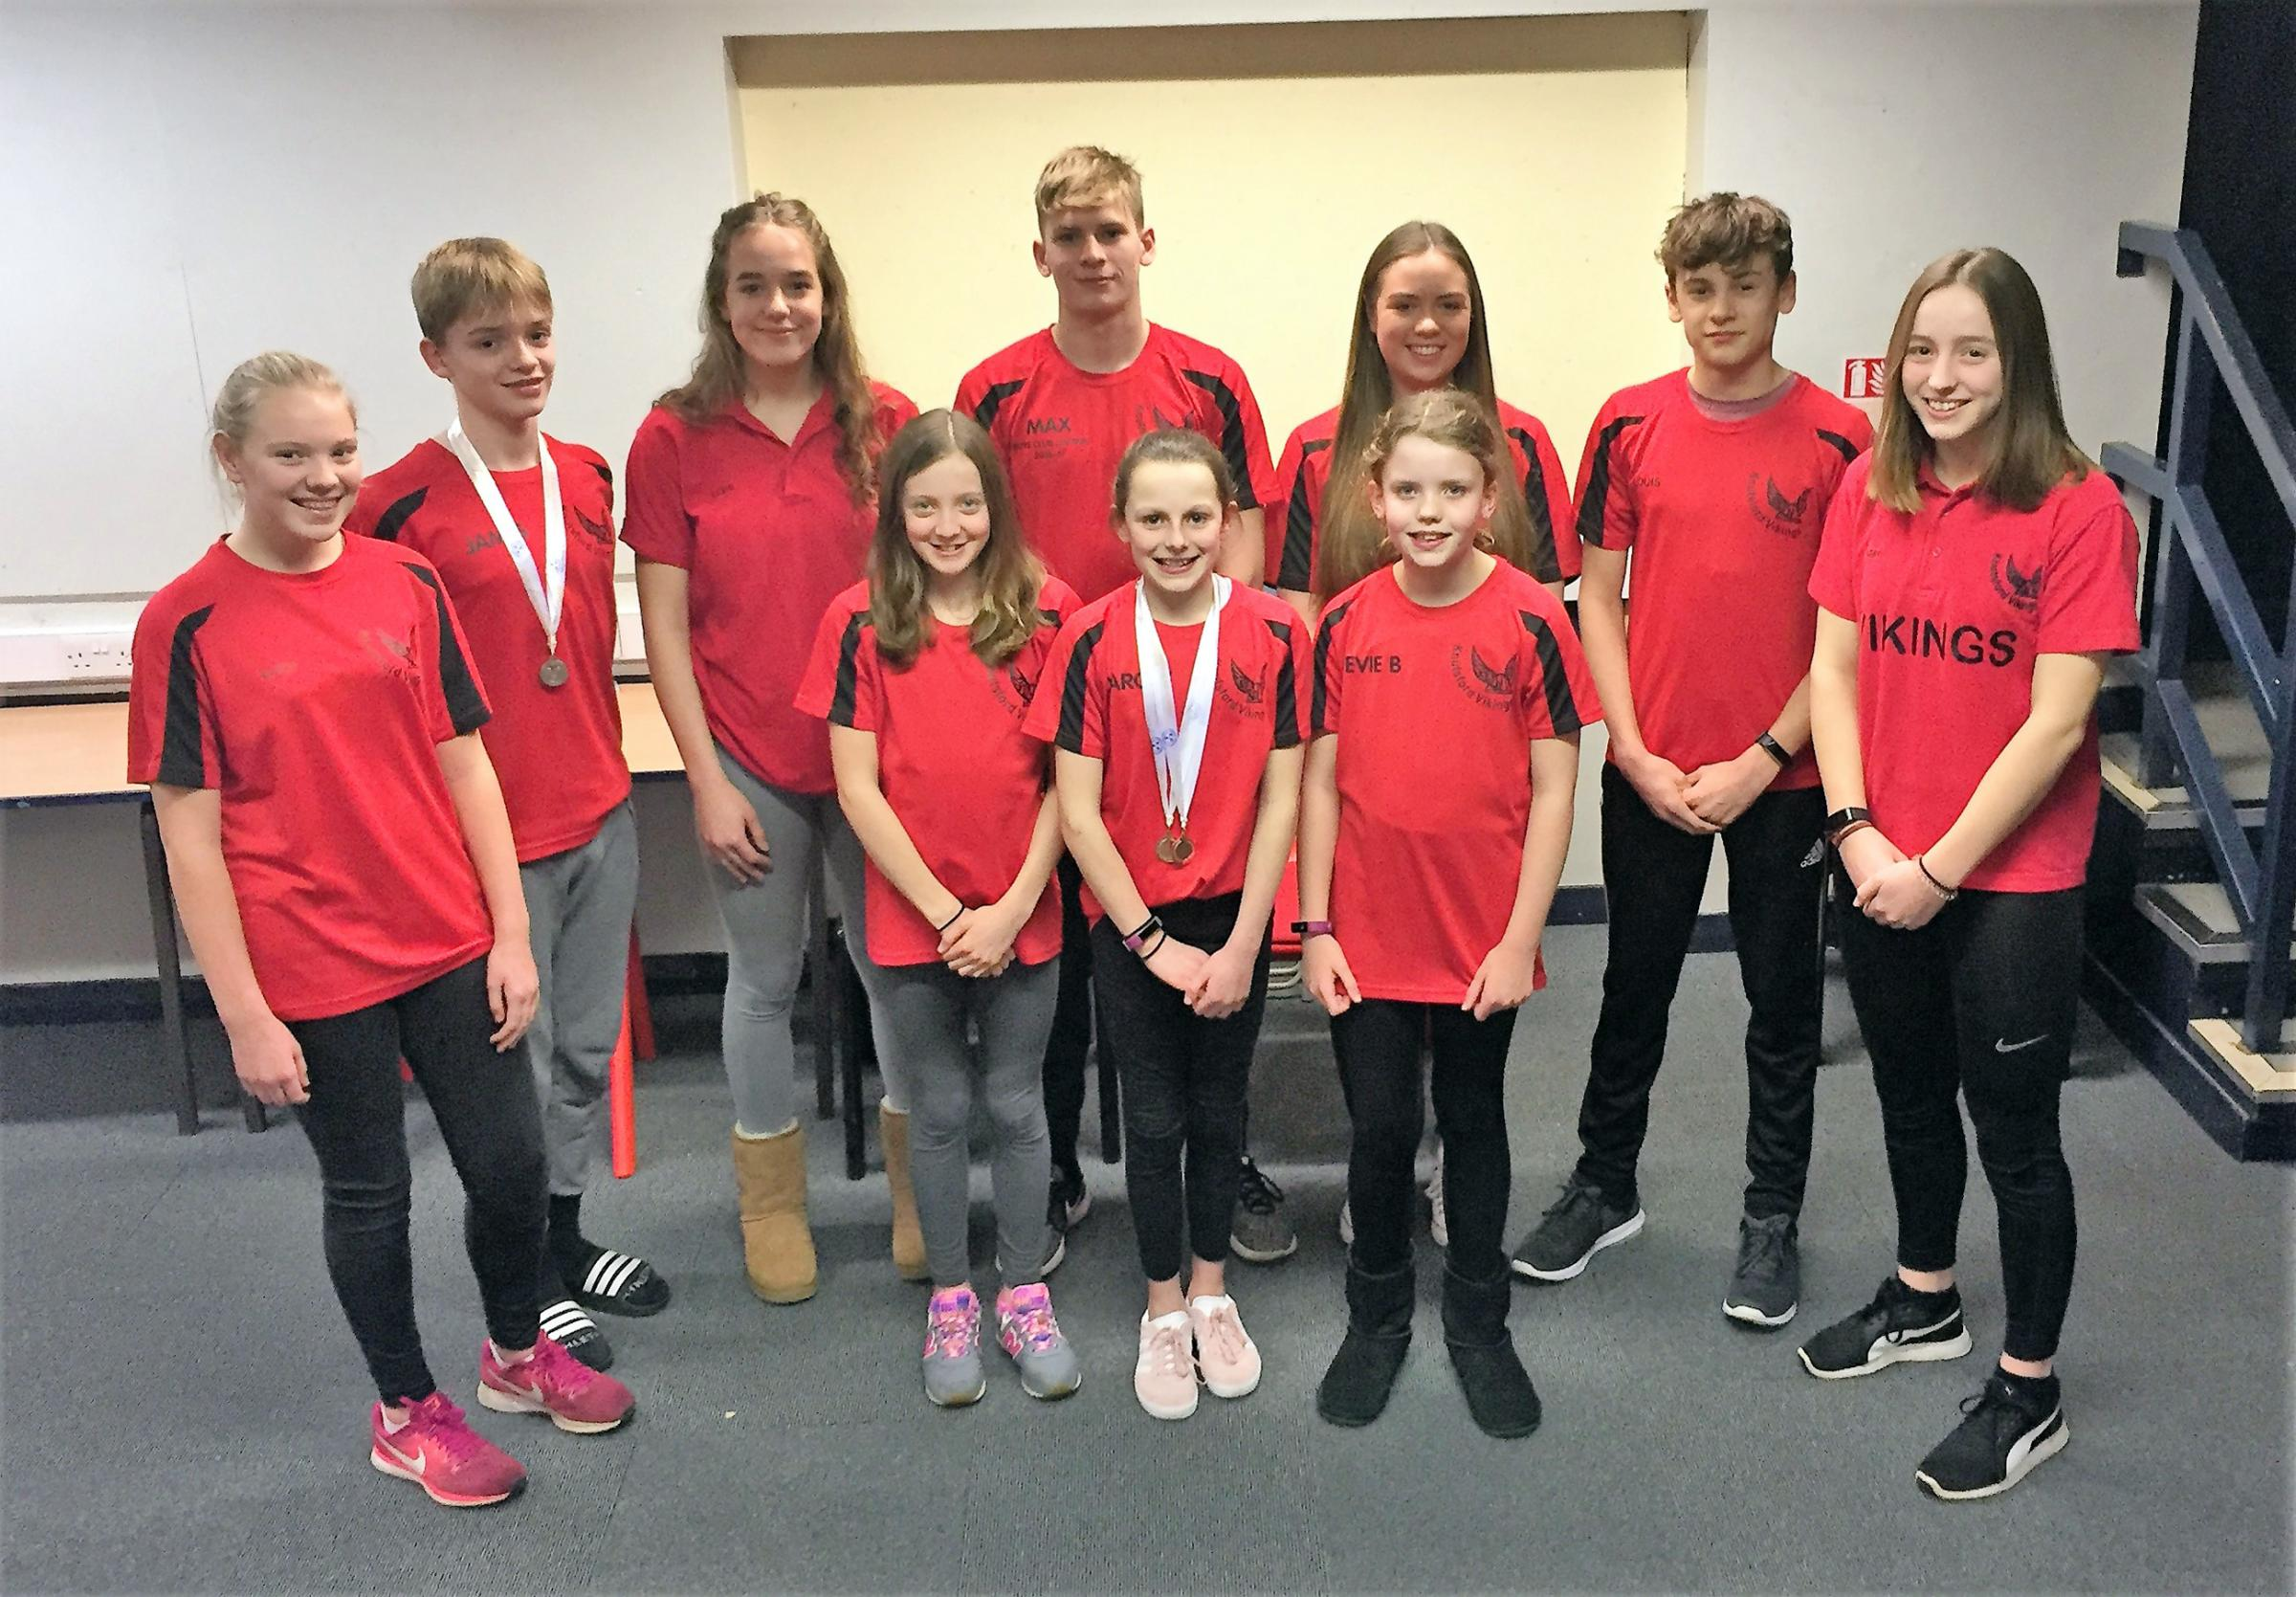 Members of Knutsford Vikings' team for the Cheshire County Championships at Macclesfield, where they won a total of eight medals